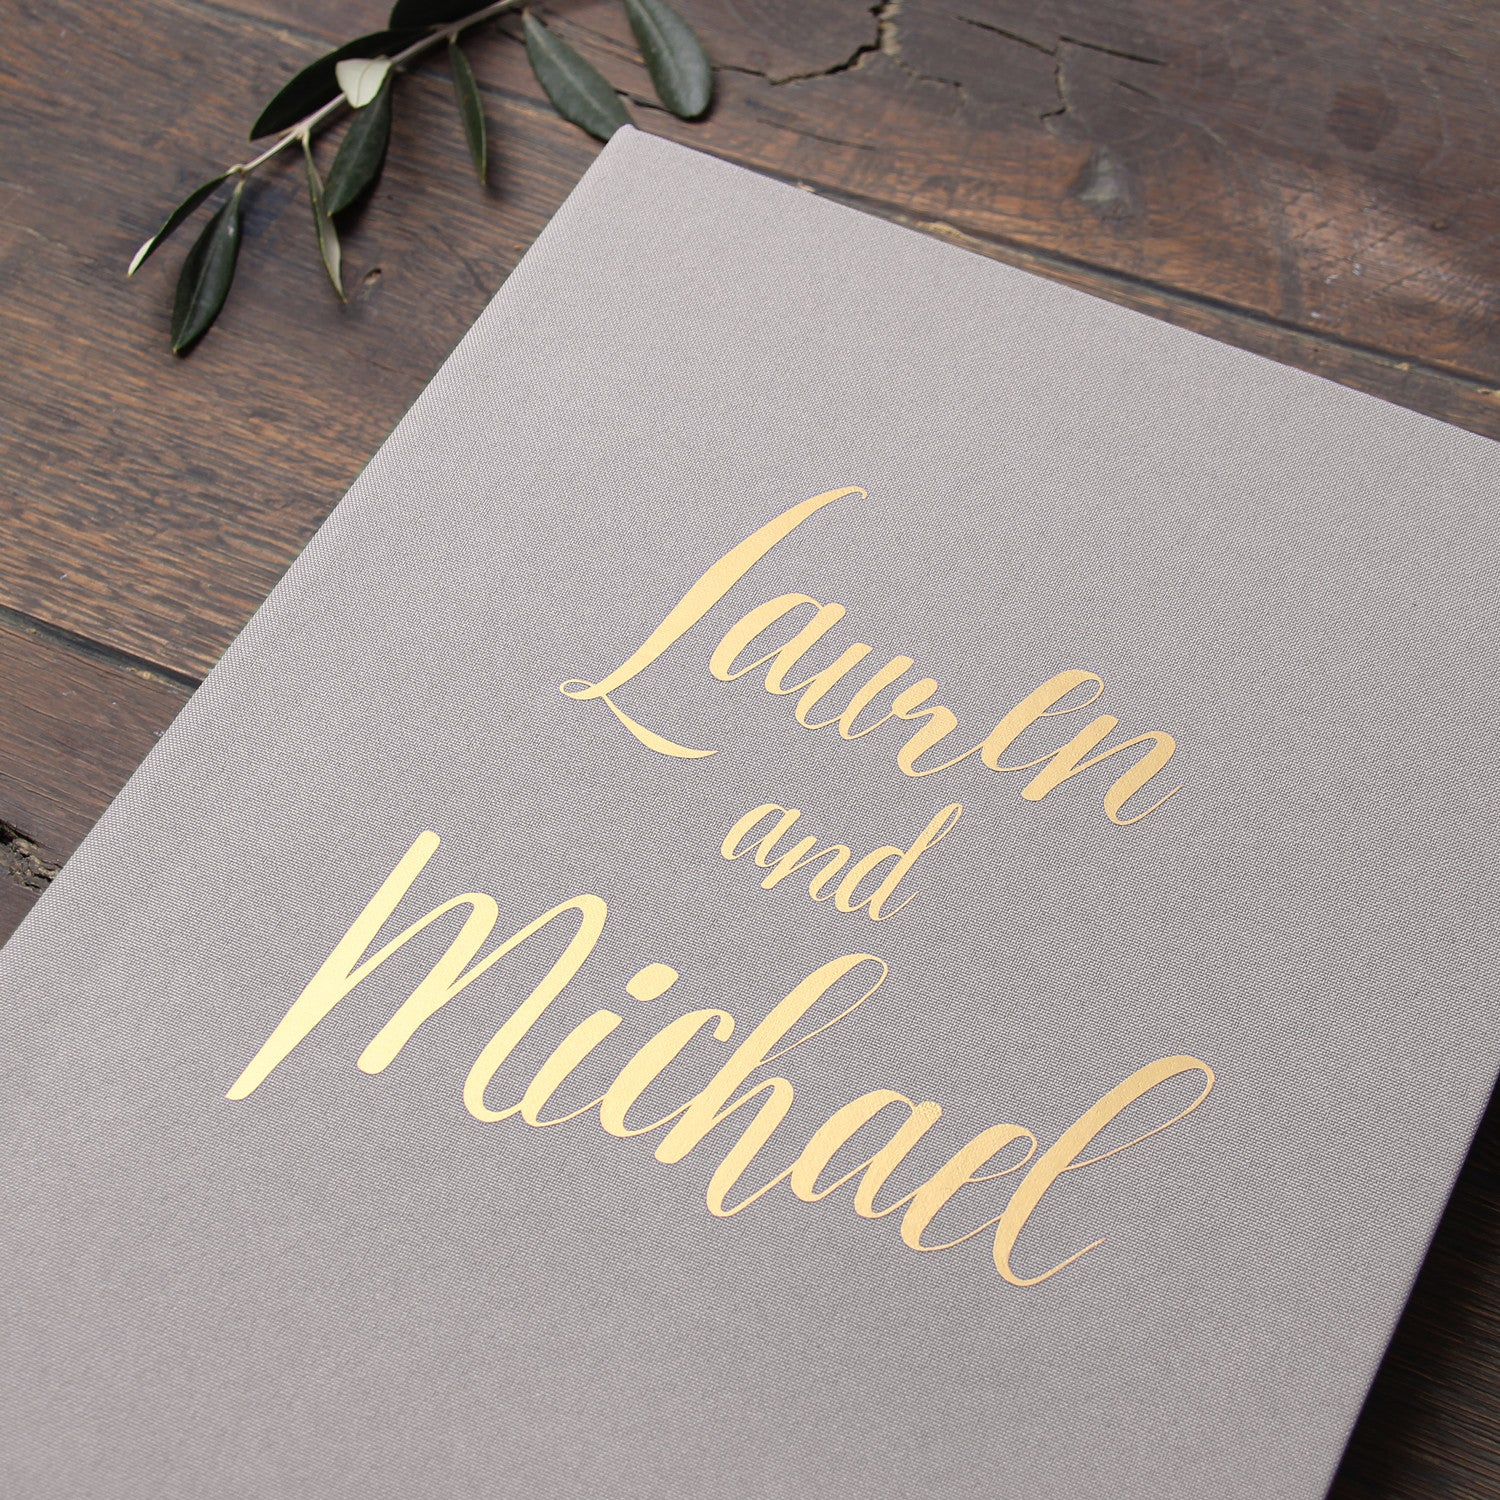 Photo Booth Wedding Guest Book Album Gray With Gold Lettering Liumy